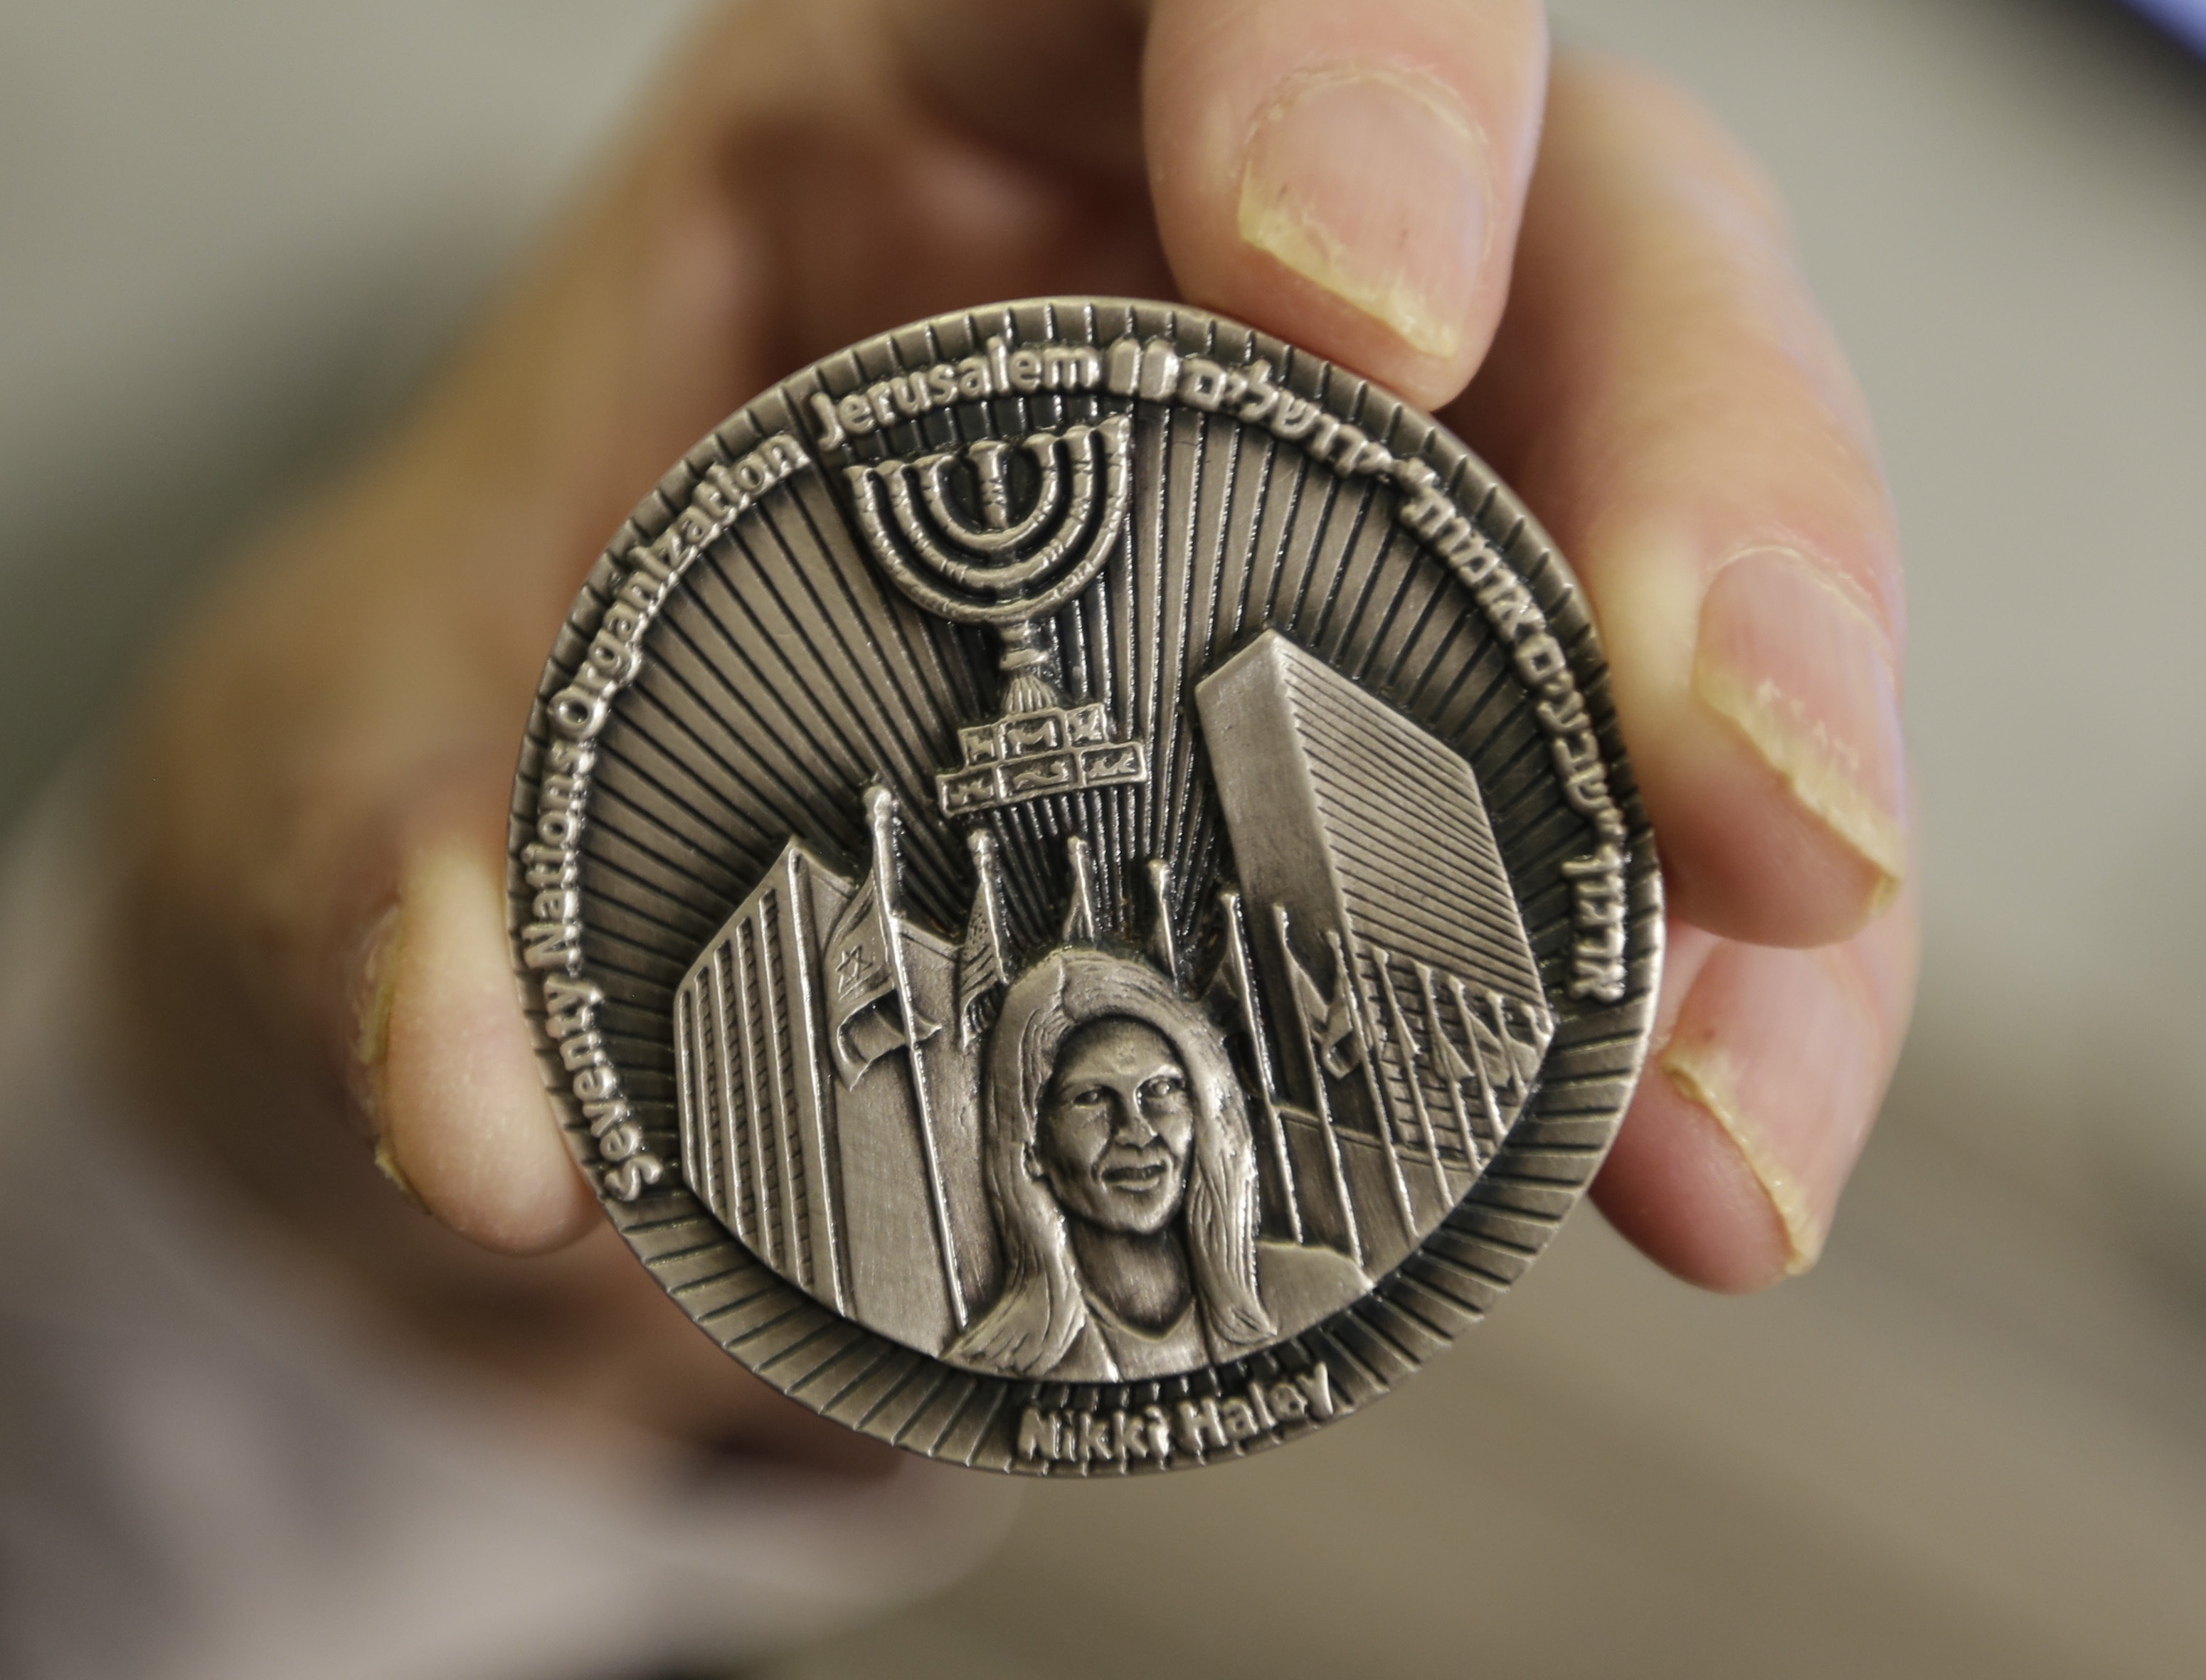 This March 13, 2019, photo shows a coin emblazoned with the face of Nikki Haley, President Donald Trump's former ambassador to the United Nations, to commemorate her defense of Israel in the United Nations, in Jerusalem.